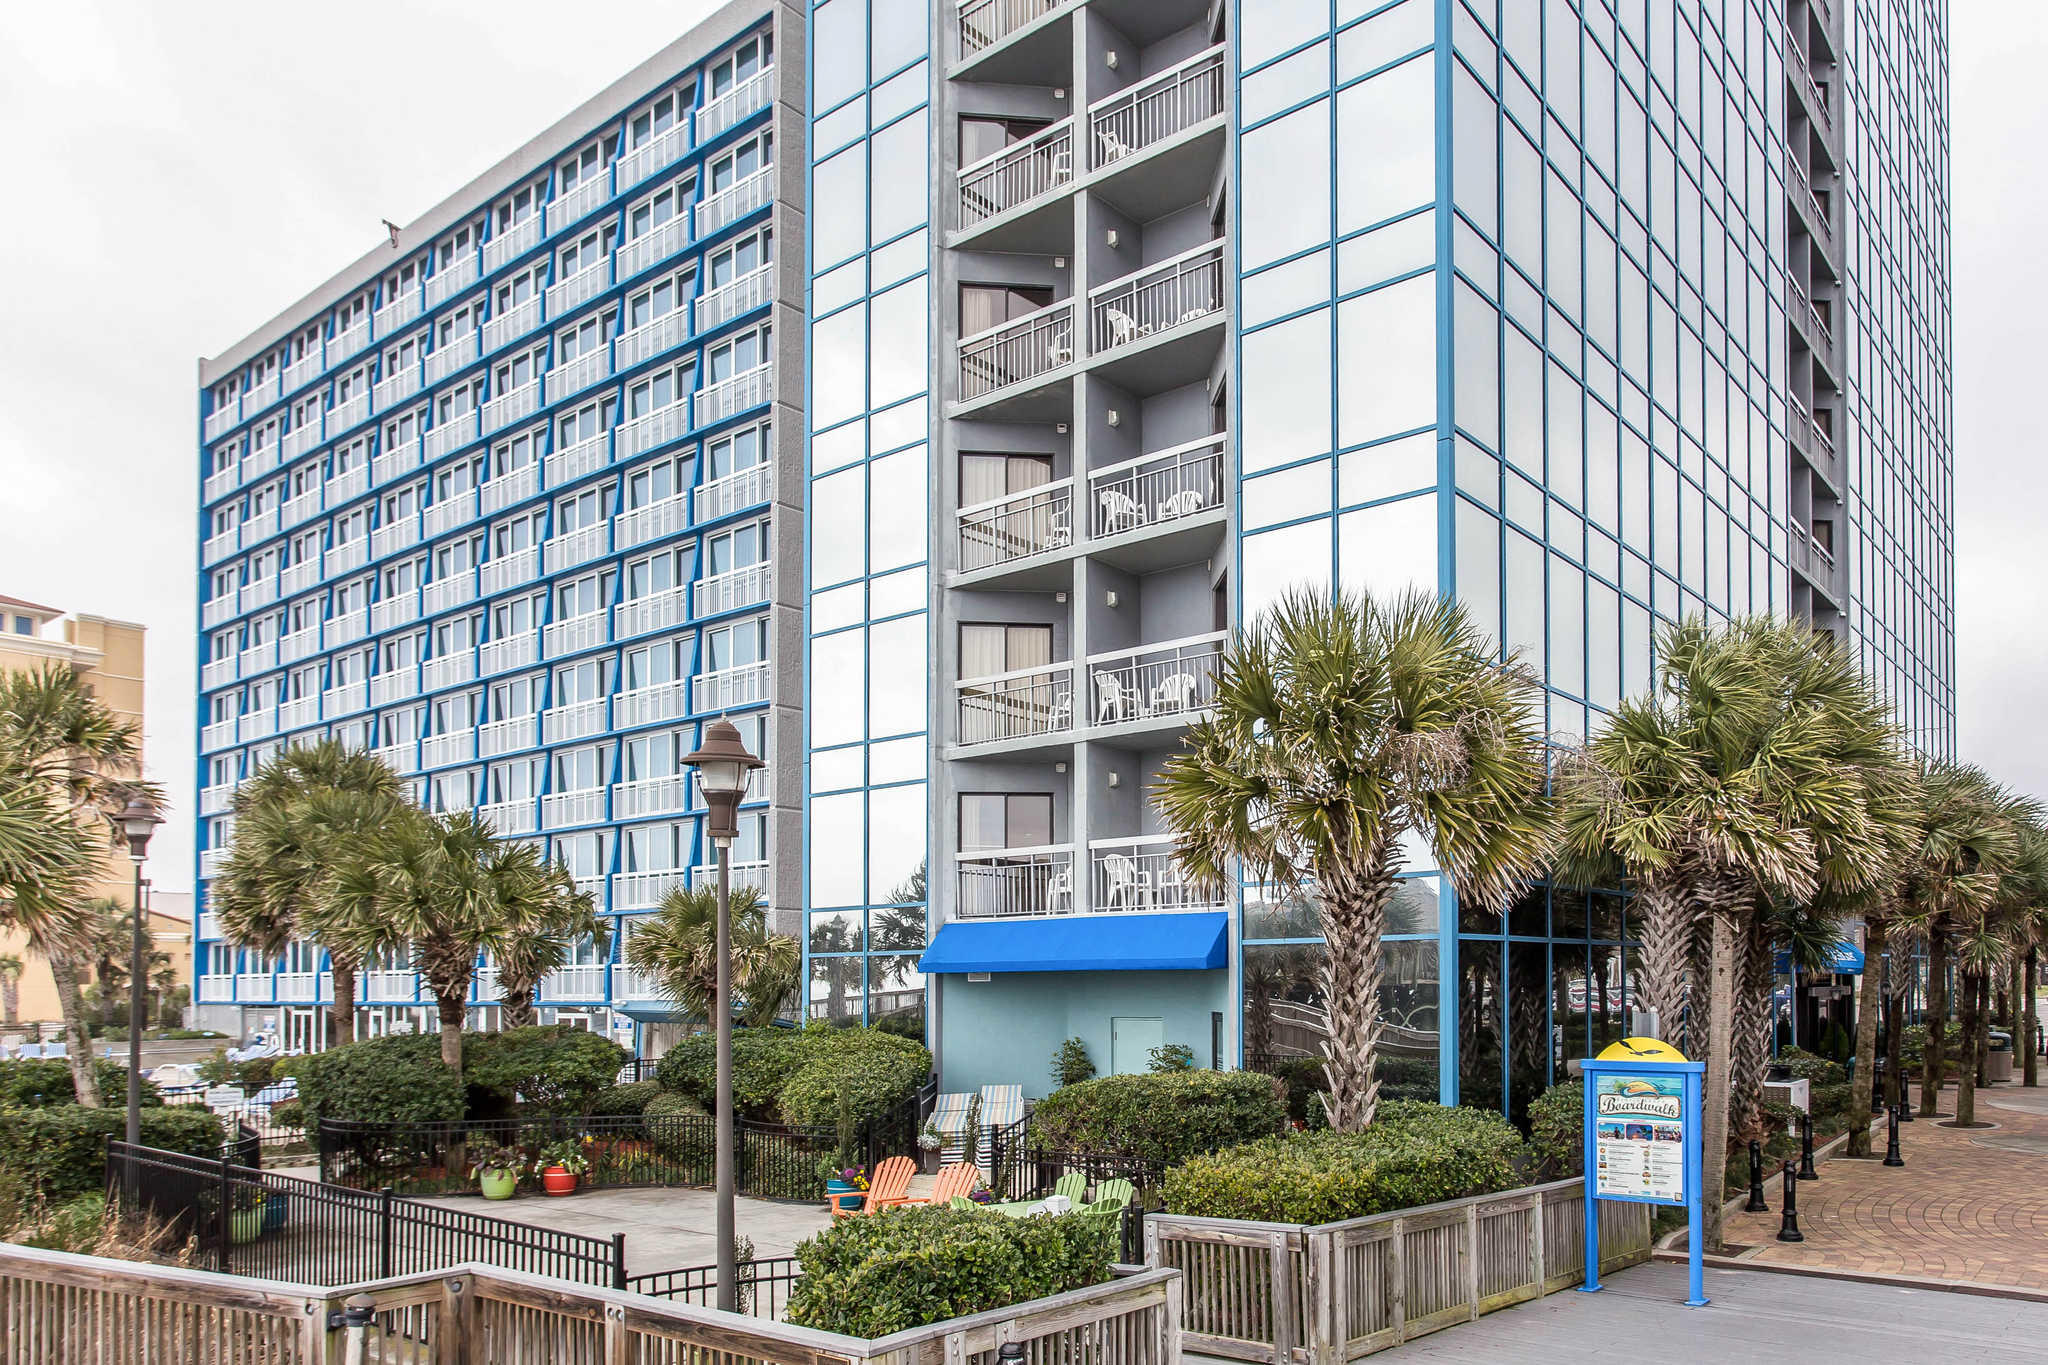 Bluegreen Vacations Seaglass Tower, Ascend Resort Collection image 3